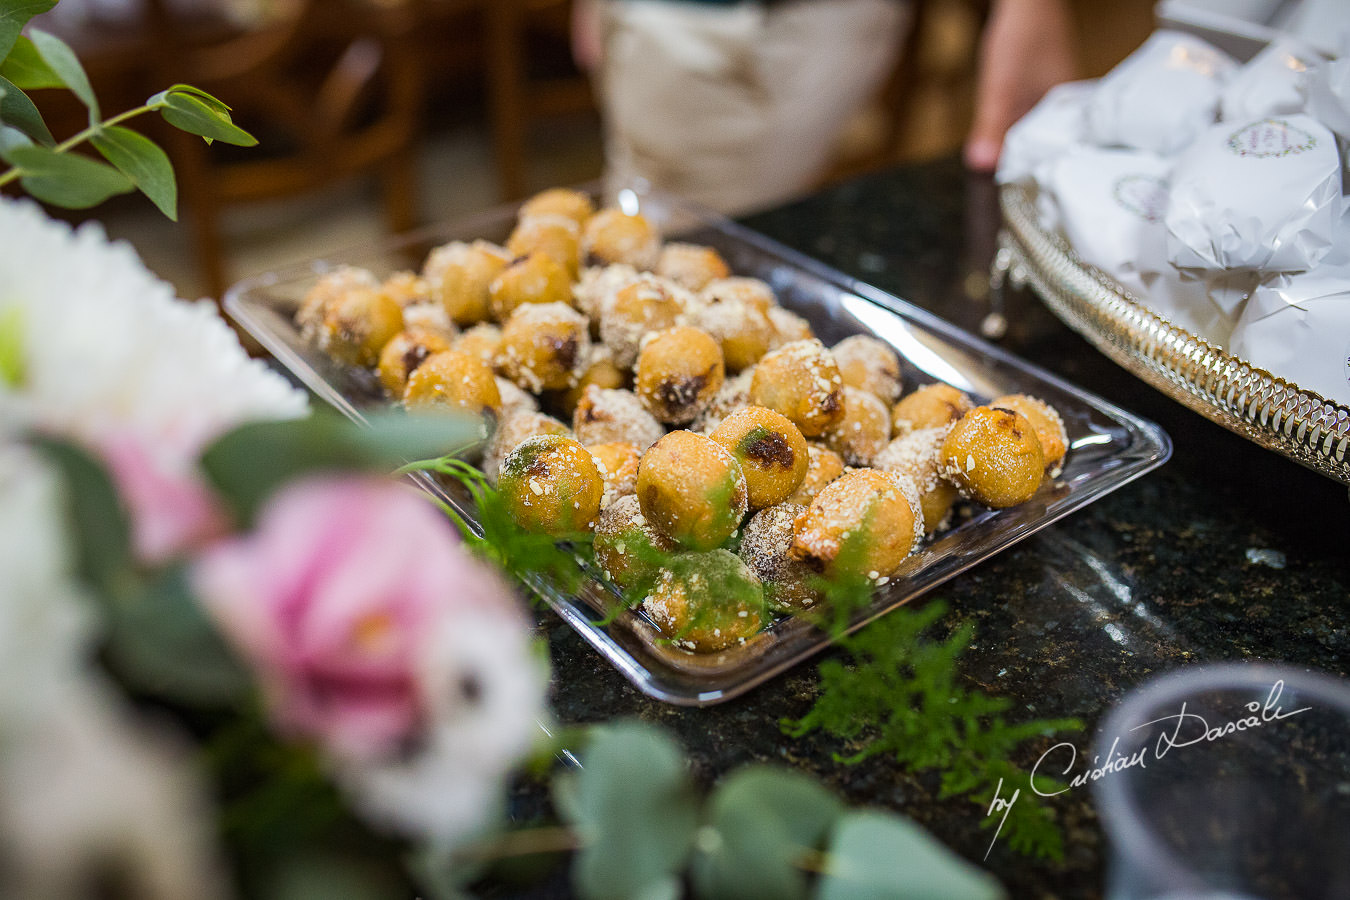 Traditional Cypriot Wedding sweets captured by Cyprus Wedding Photographer Cristian Dascalu at a beautiful wedding in Larnaka, Cyprus.